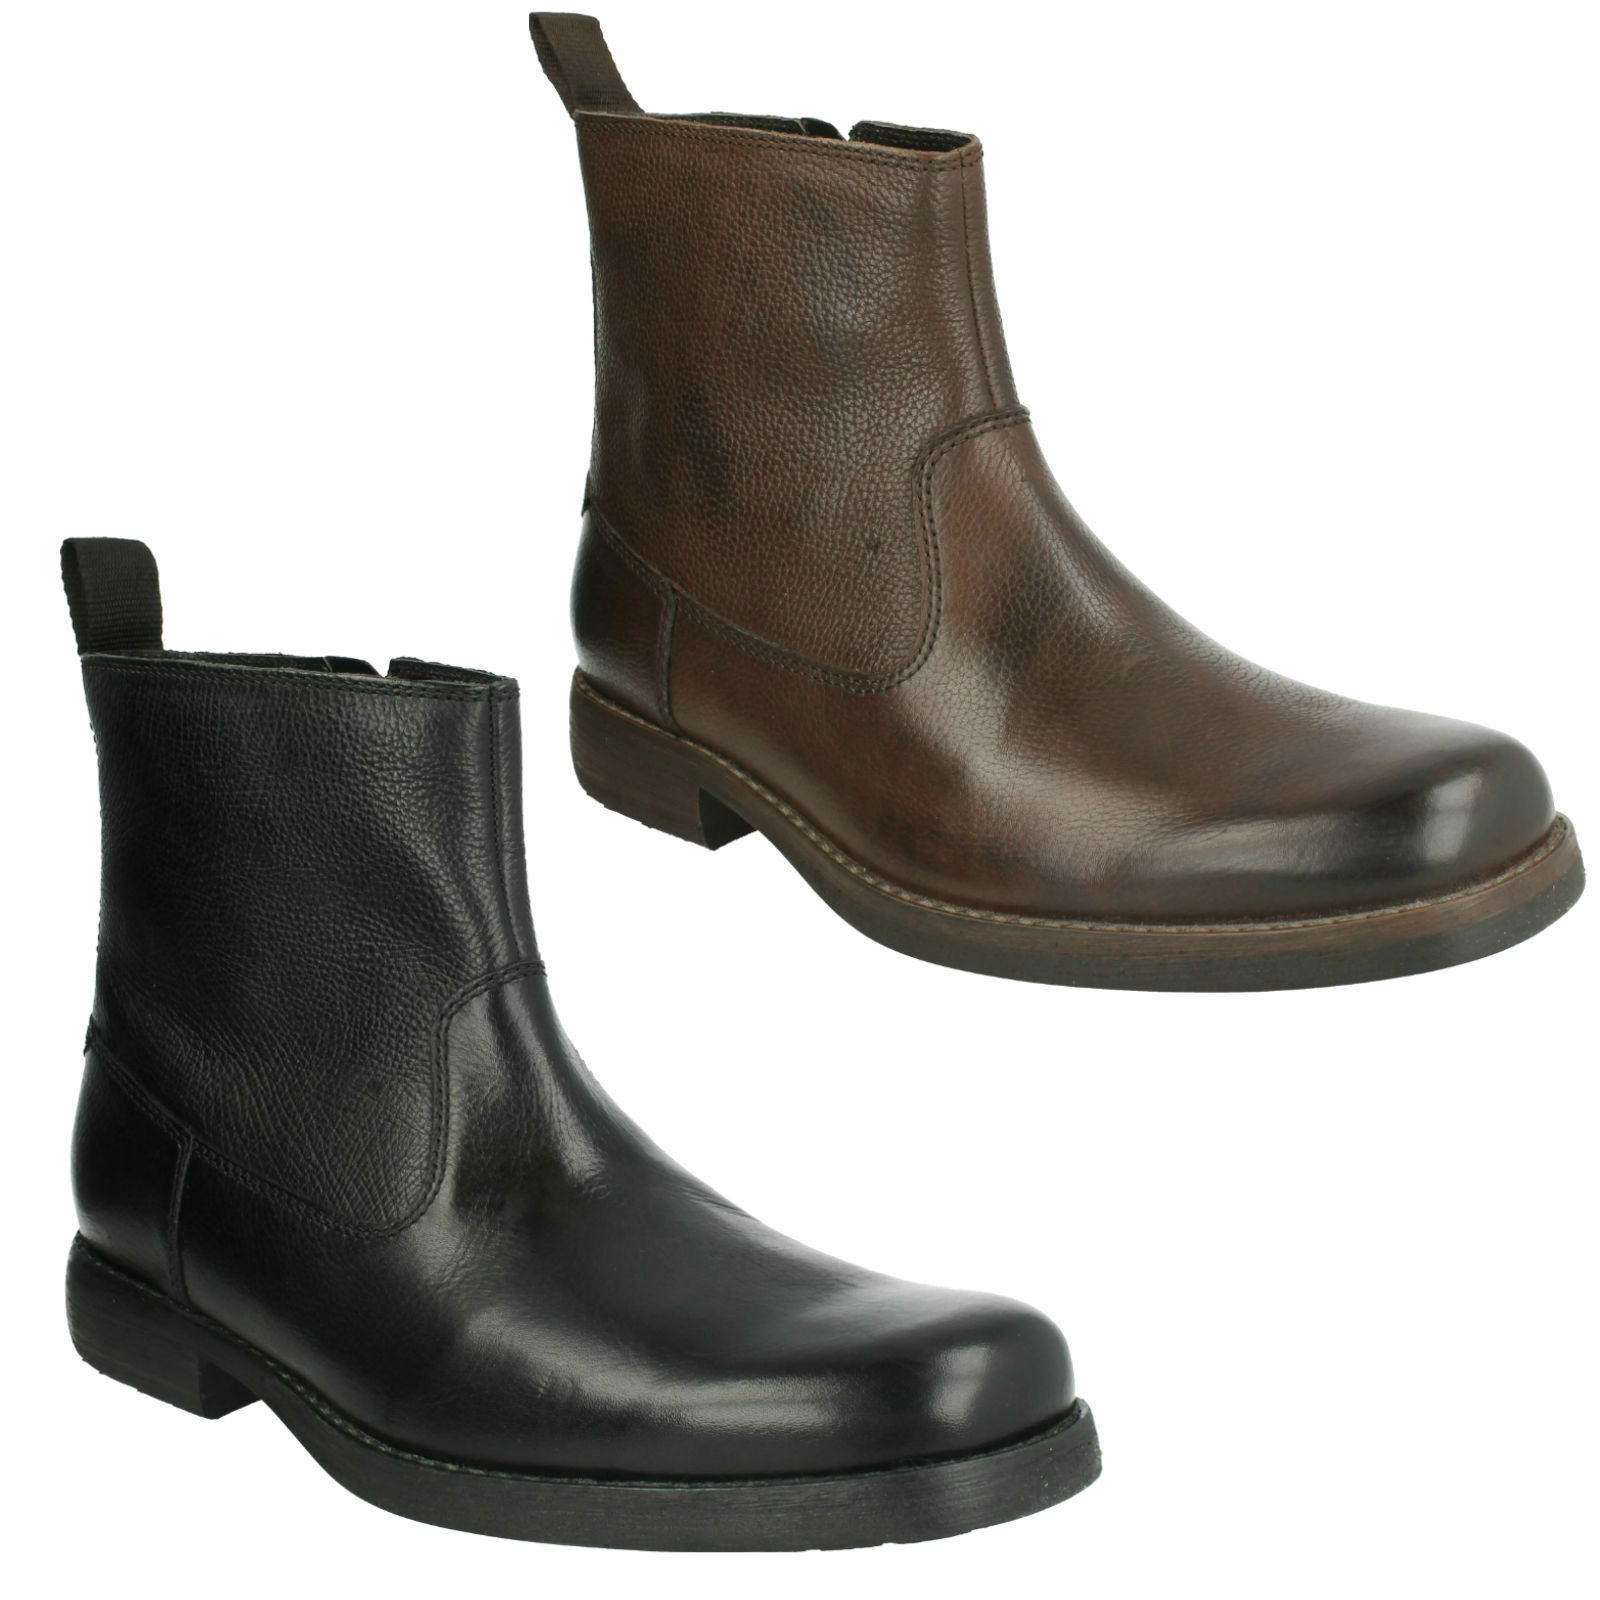 CLARKS MENS ROUND TOE SMART CASUAL FORMAL LEATHER ZIP UP Stiefel ASHBURN ZIP